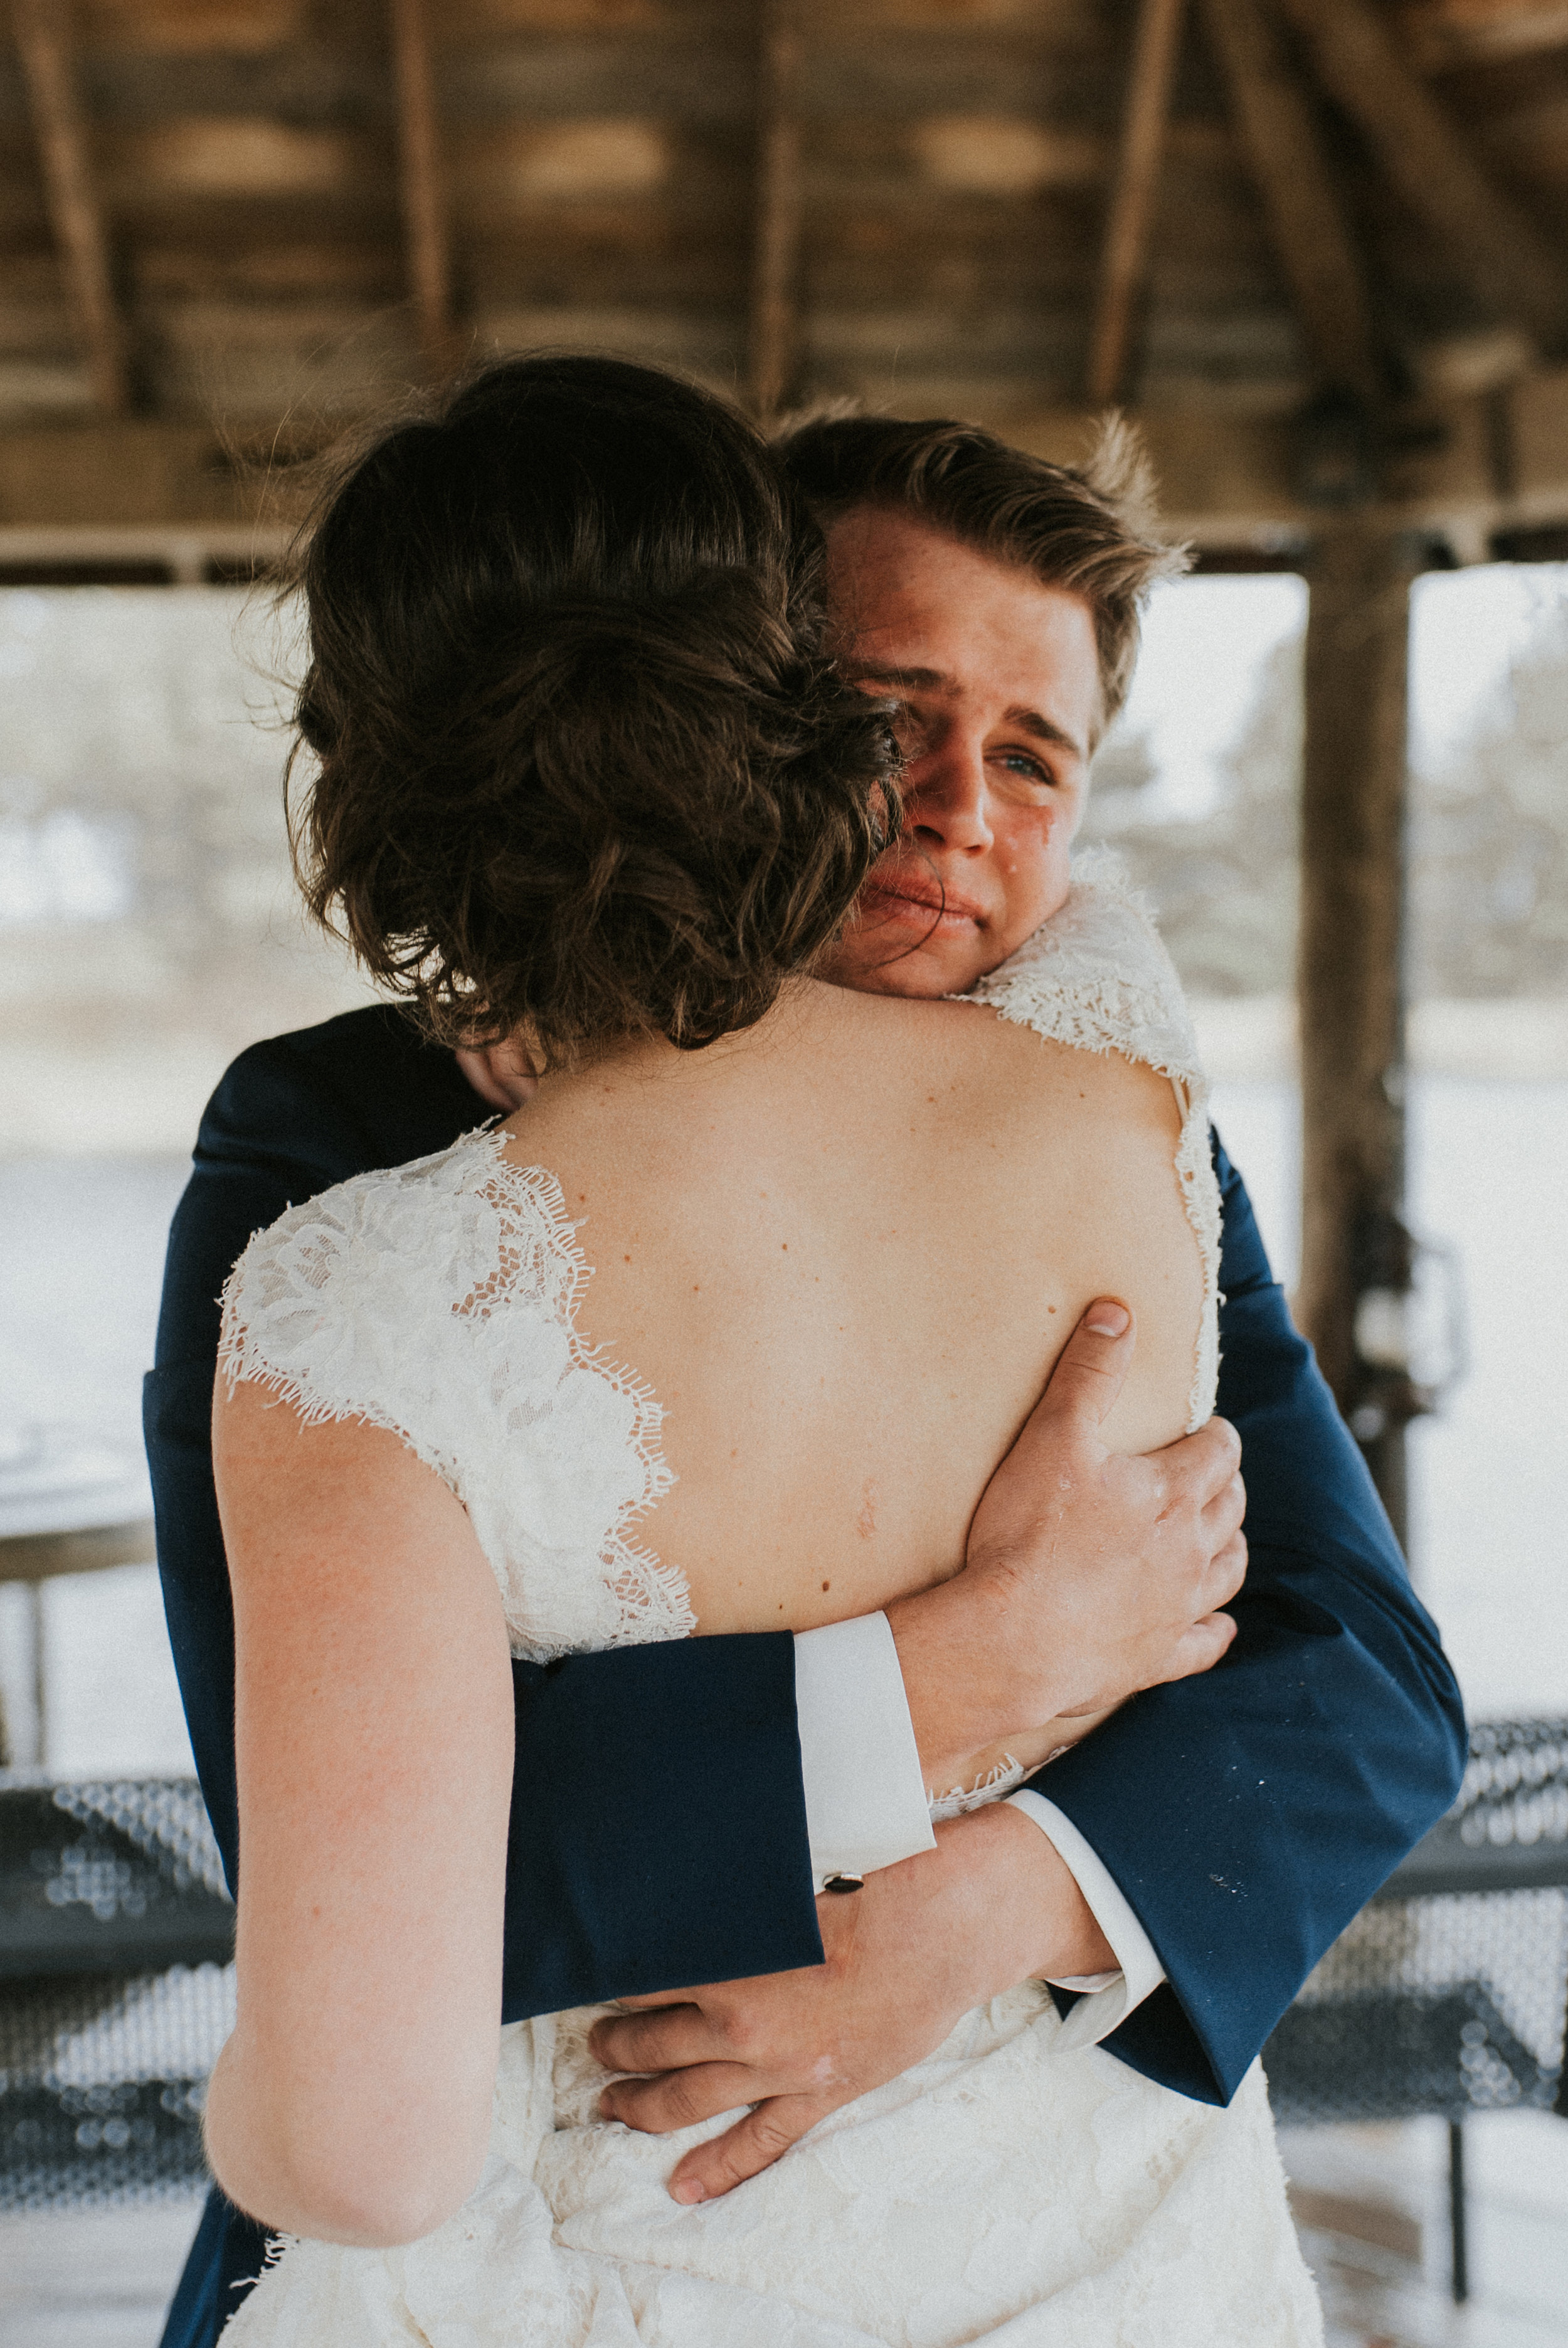 Emotional first look with groom crying and hugging bride - this was a rainy April wedding in West Branch, Iowa   Photo by Marissa Kelly Photography